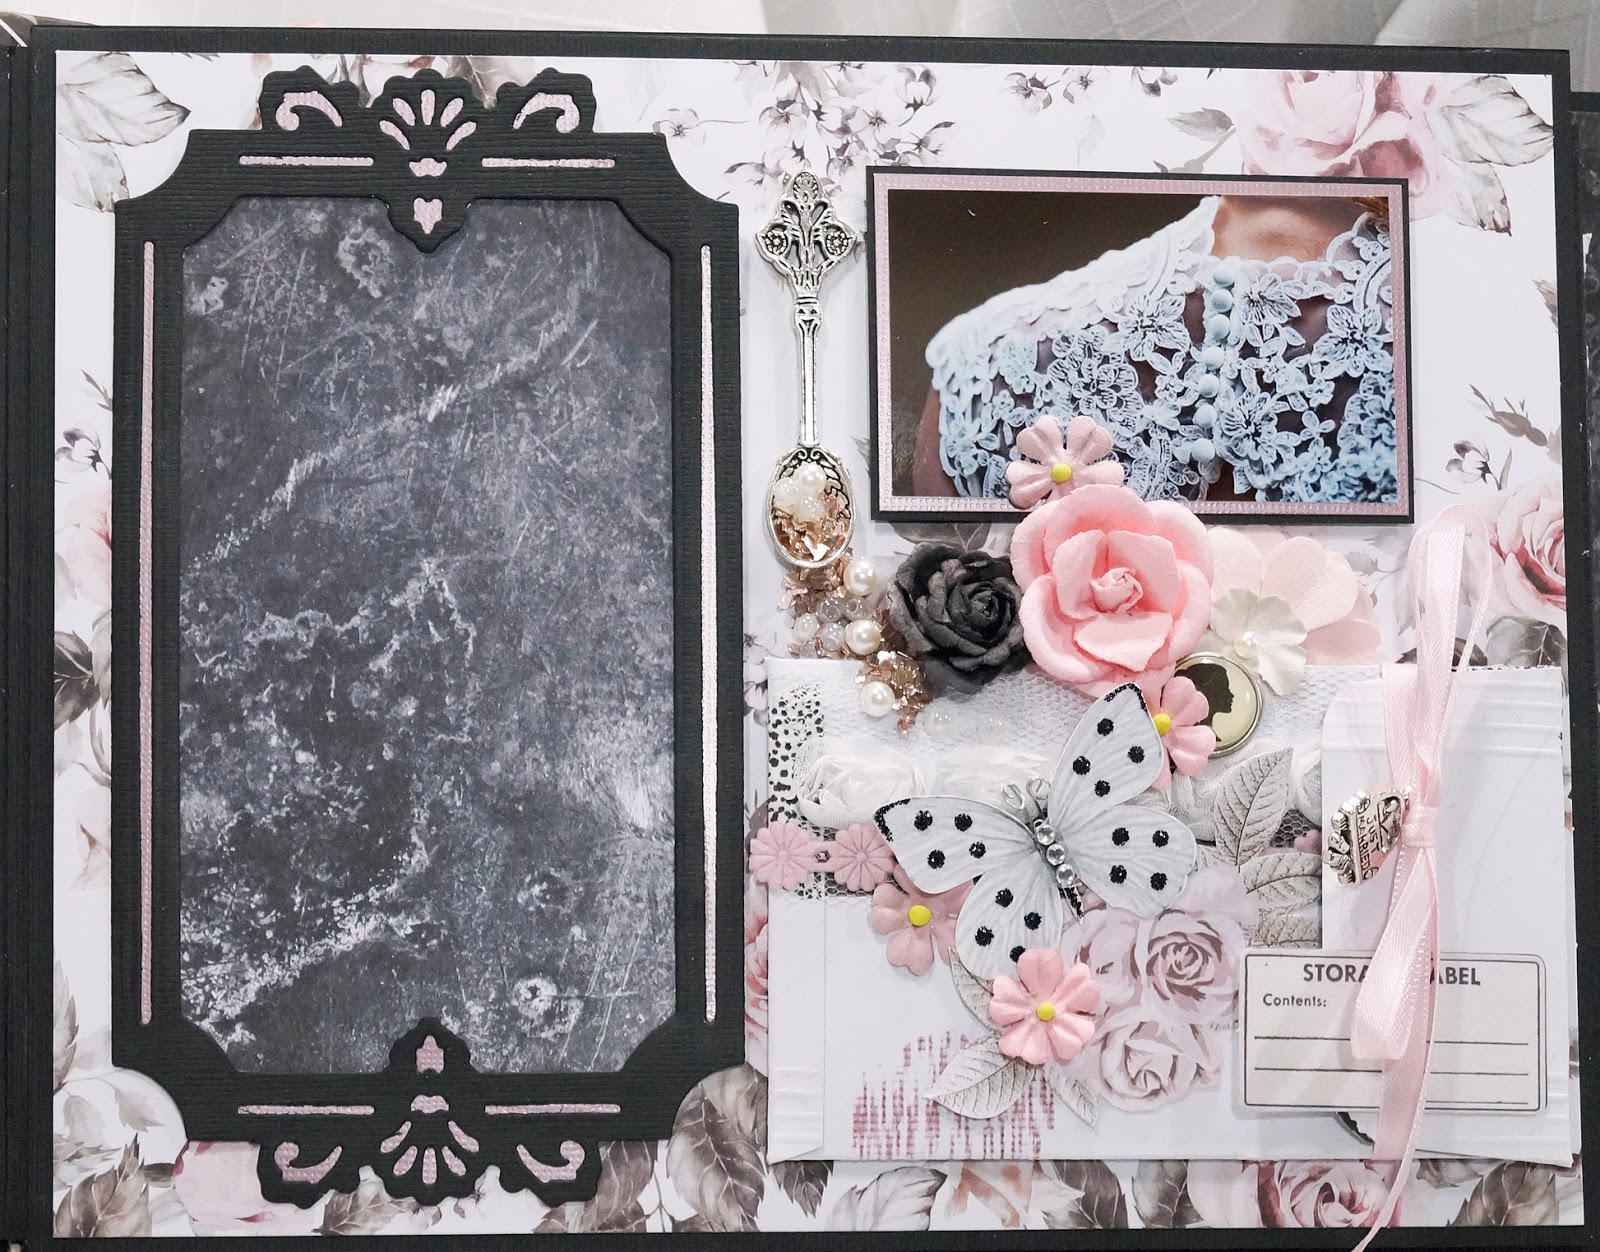 How to scrapbook on youtube - Watch The You Tube Video To See More